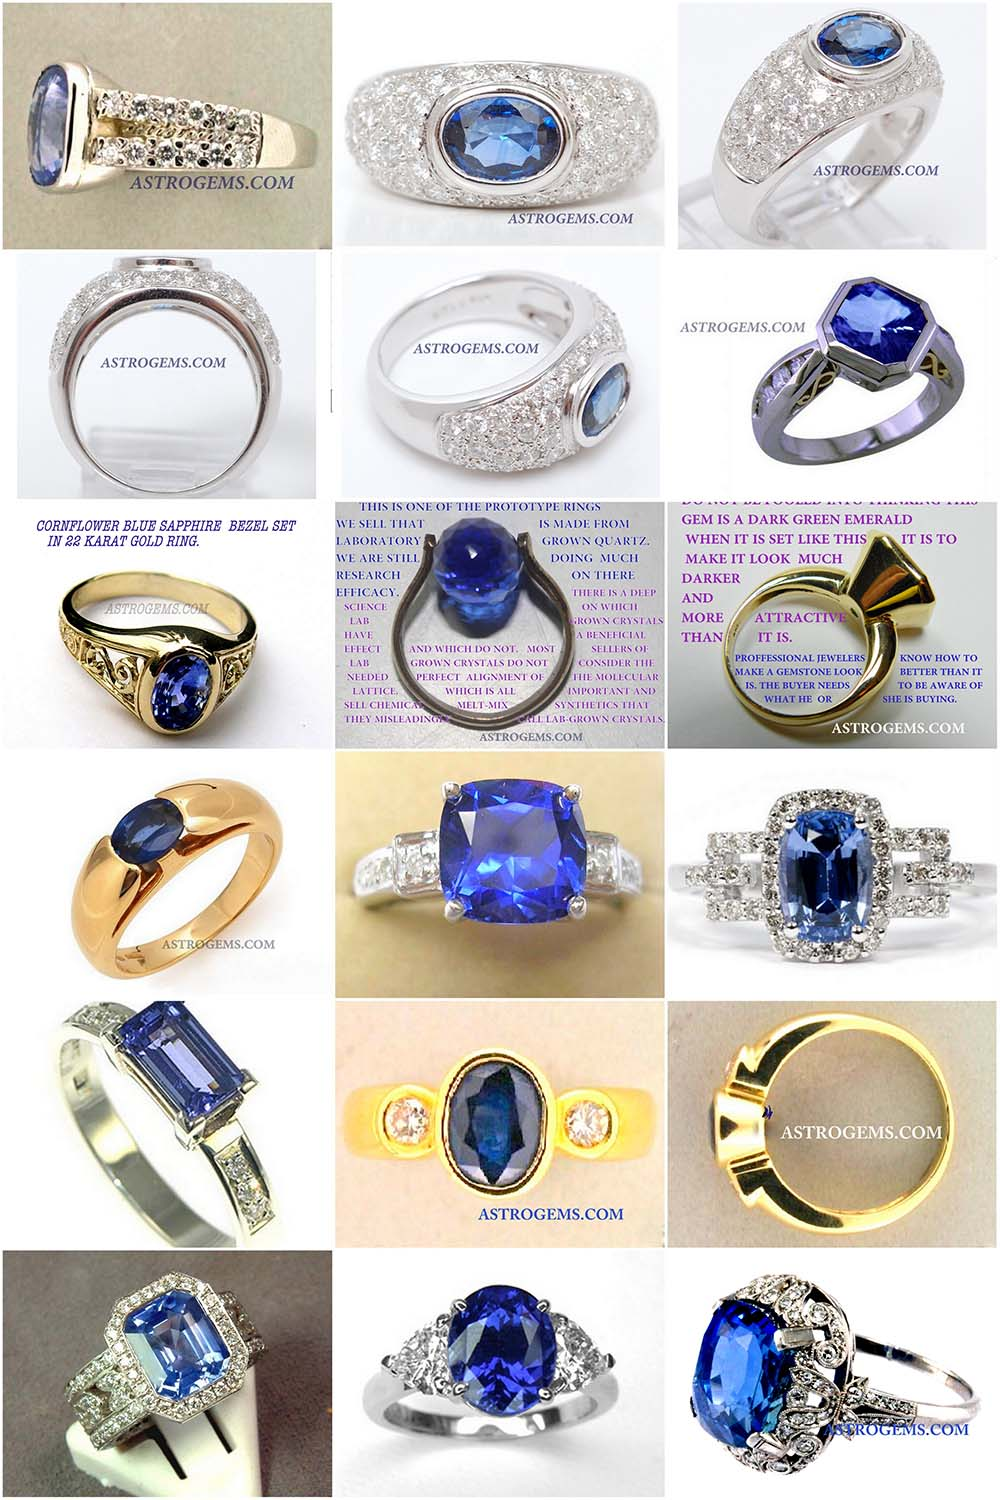 Astrogems can make any style of jyotish blue sapphire rings.